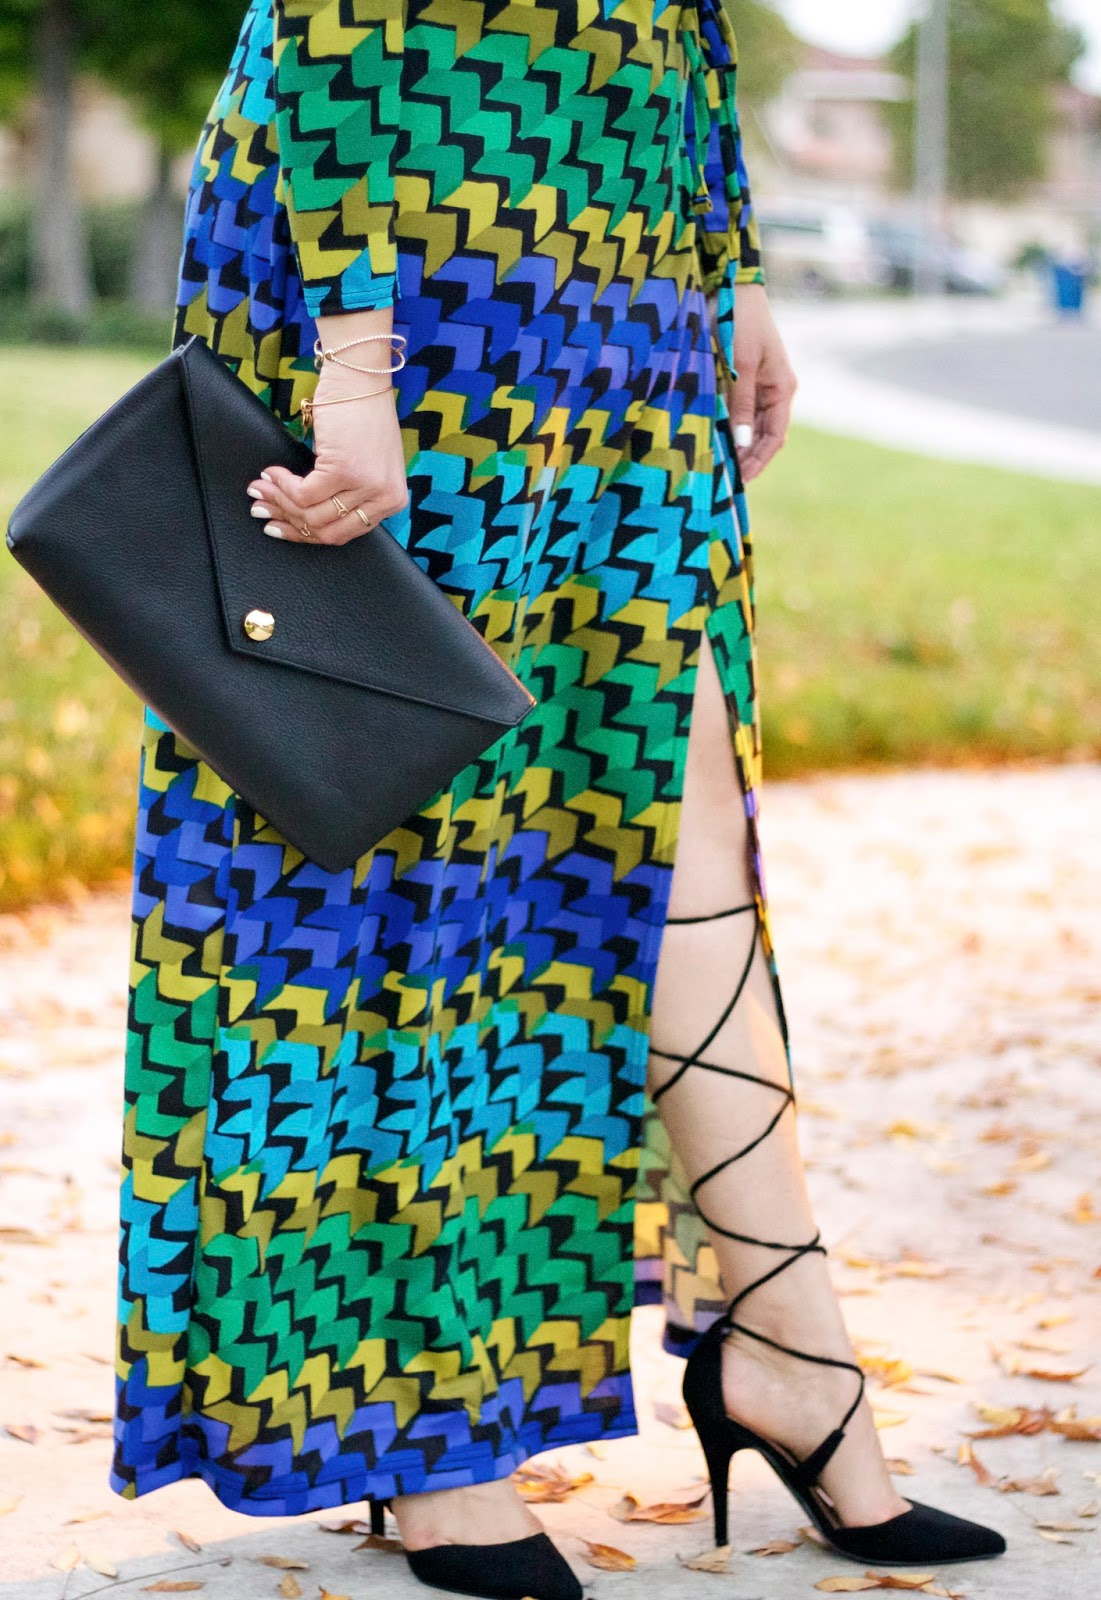 How to wear a maxi dress, lace up pumps, cool Maxi dresses, lace up heels, shoedazzle heels